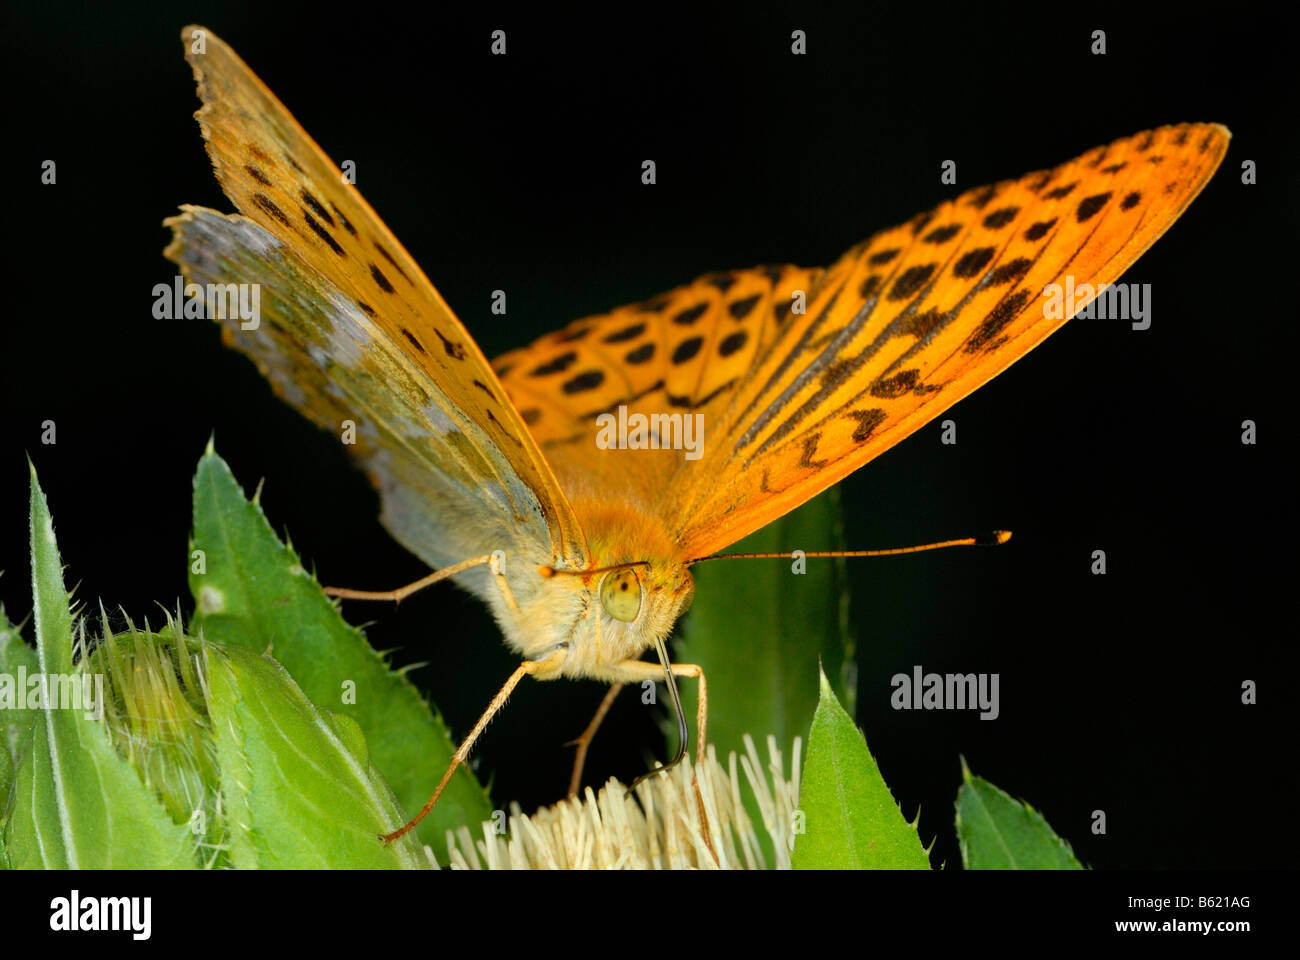 Silver-washed Fritillary (Argynnis paphia) on a blossom - Stock Image